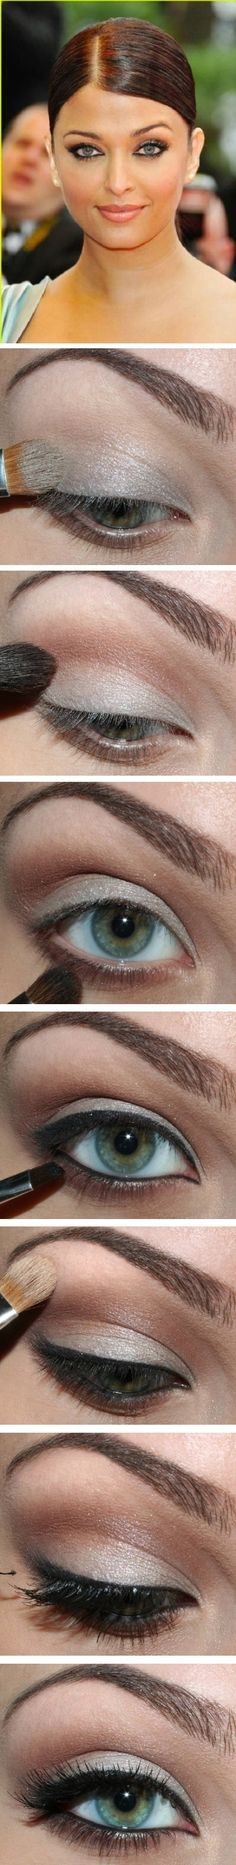 Aishwarya Rai eye makeup